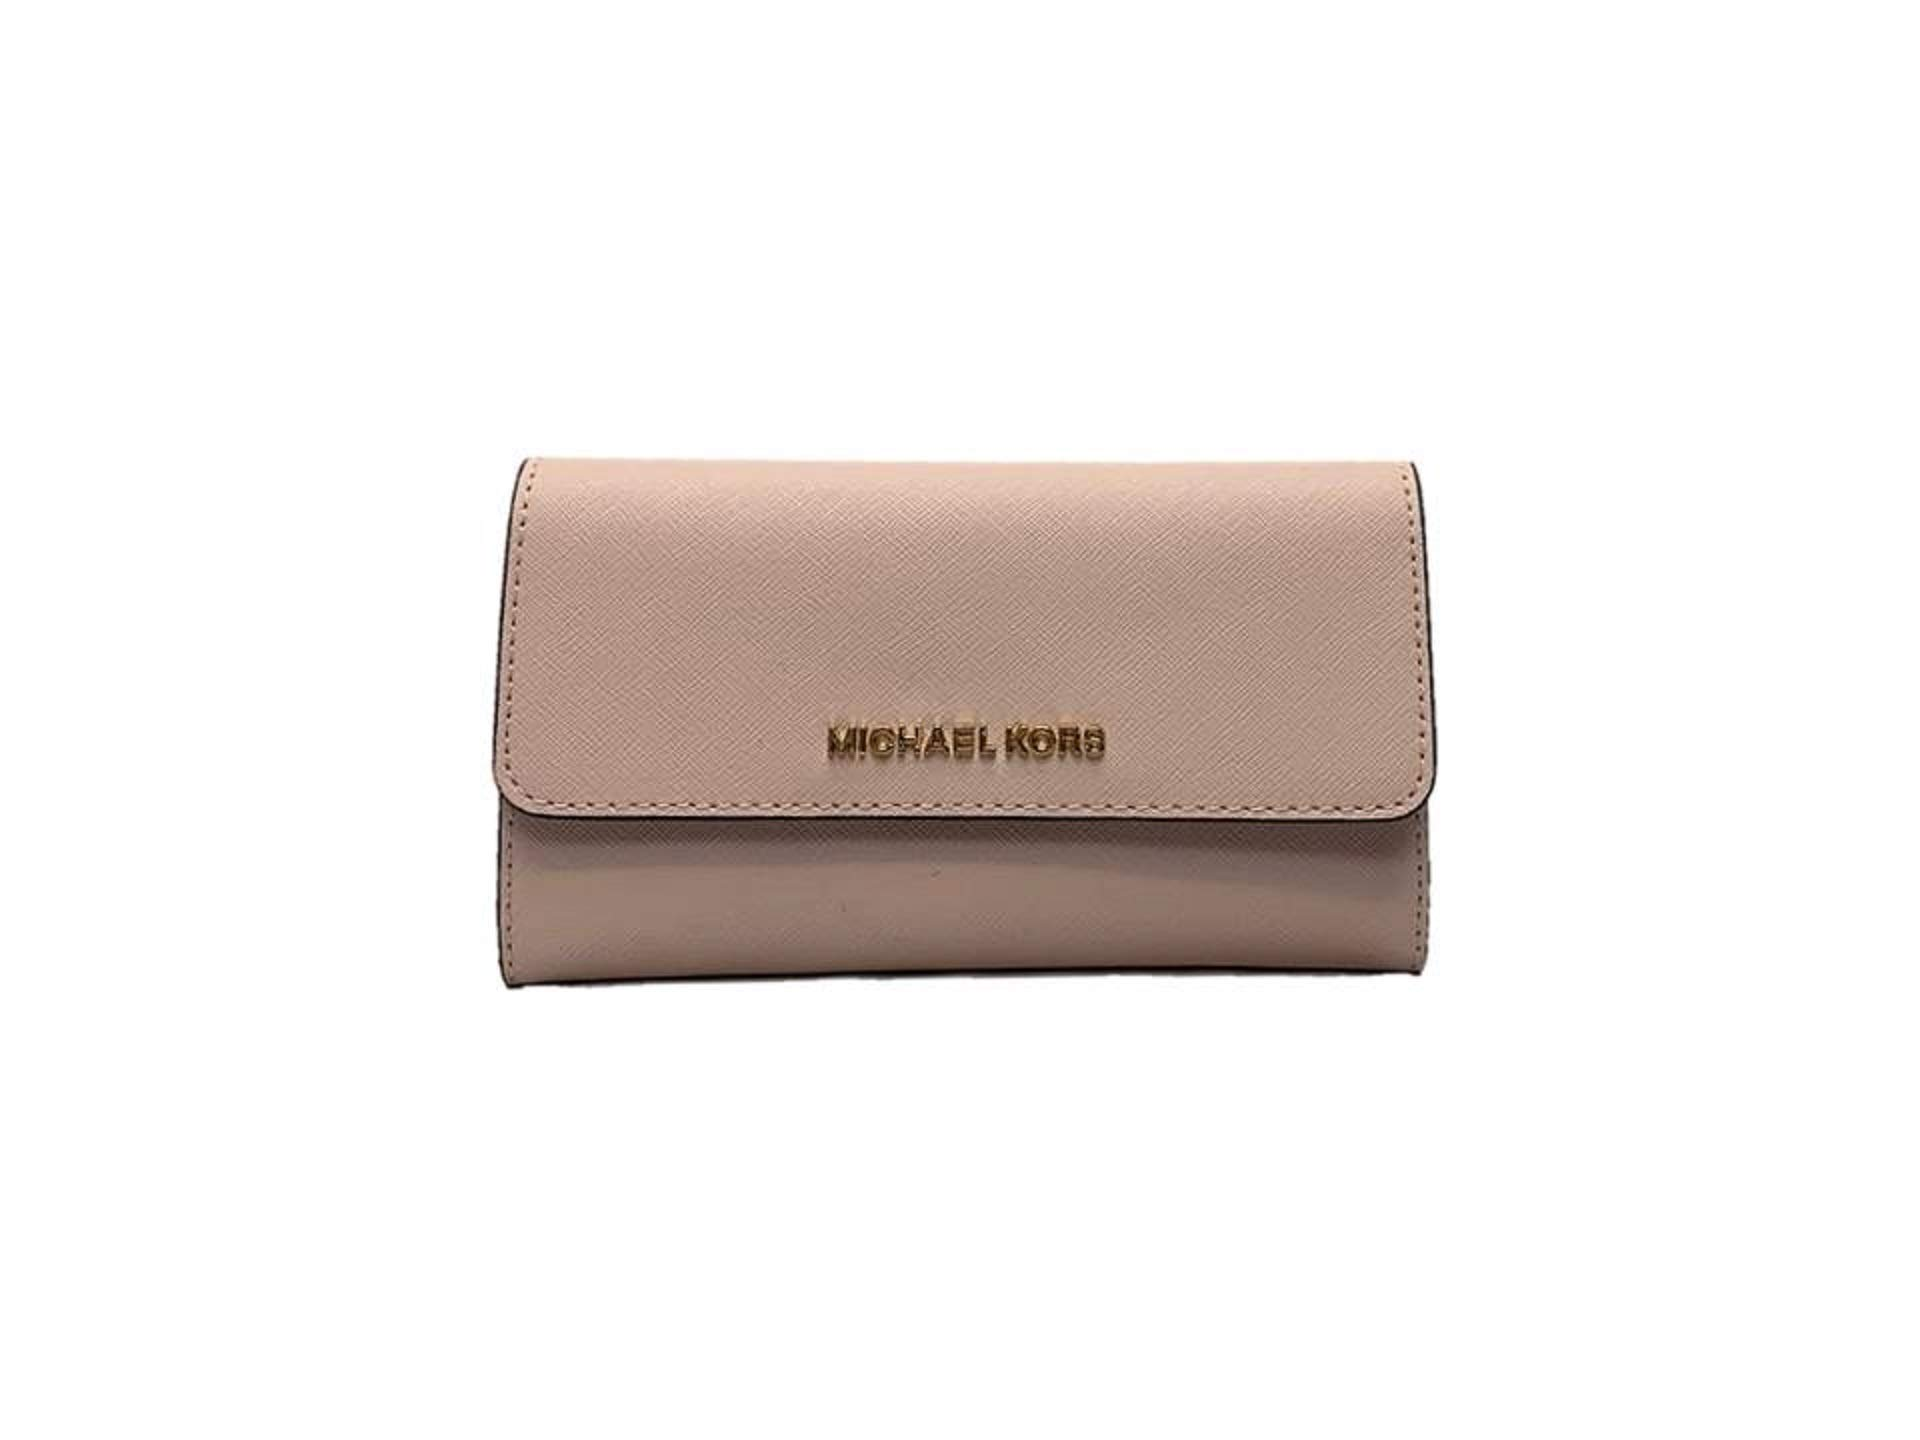 Michael Kors Jet Set Travel Large Trifold Saffiano Leather Wallet - Blossom/Fawn